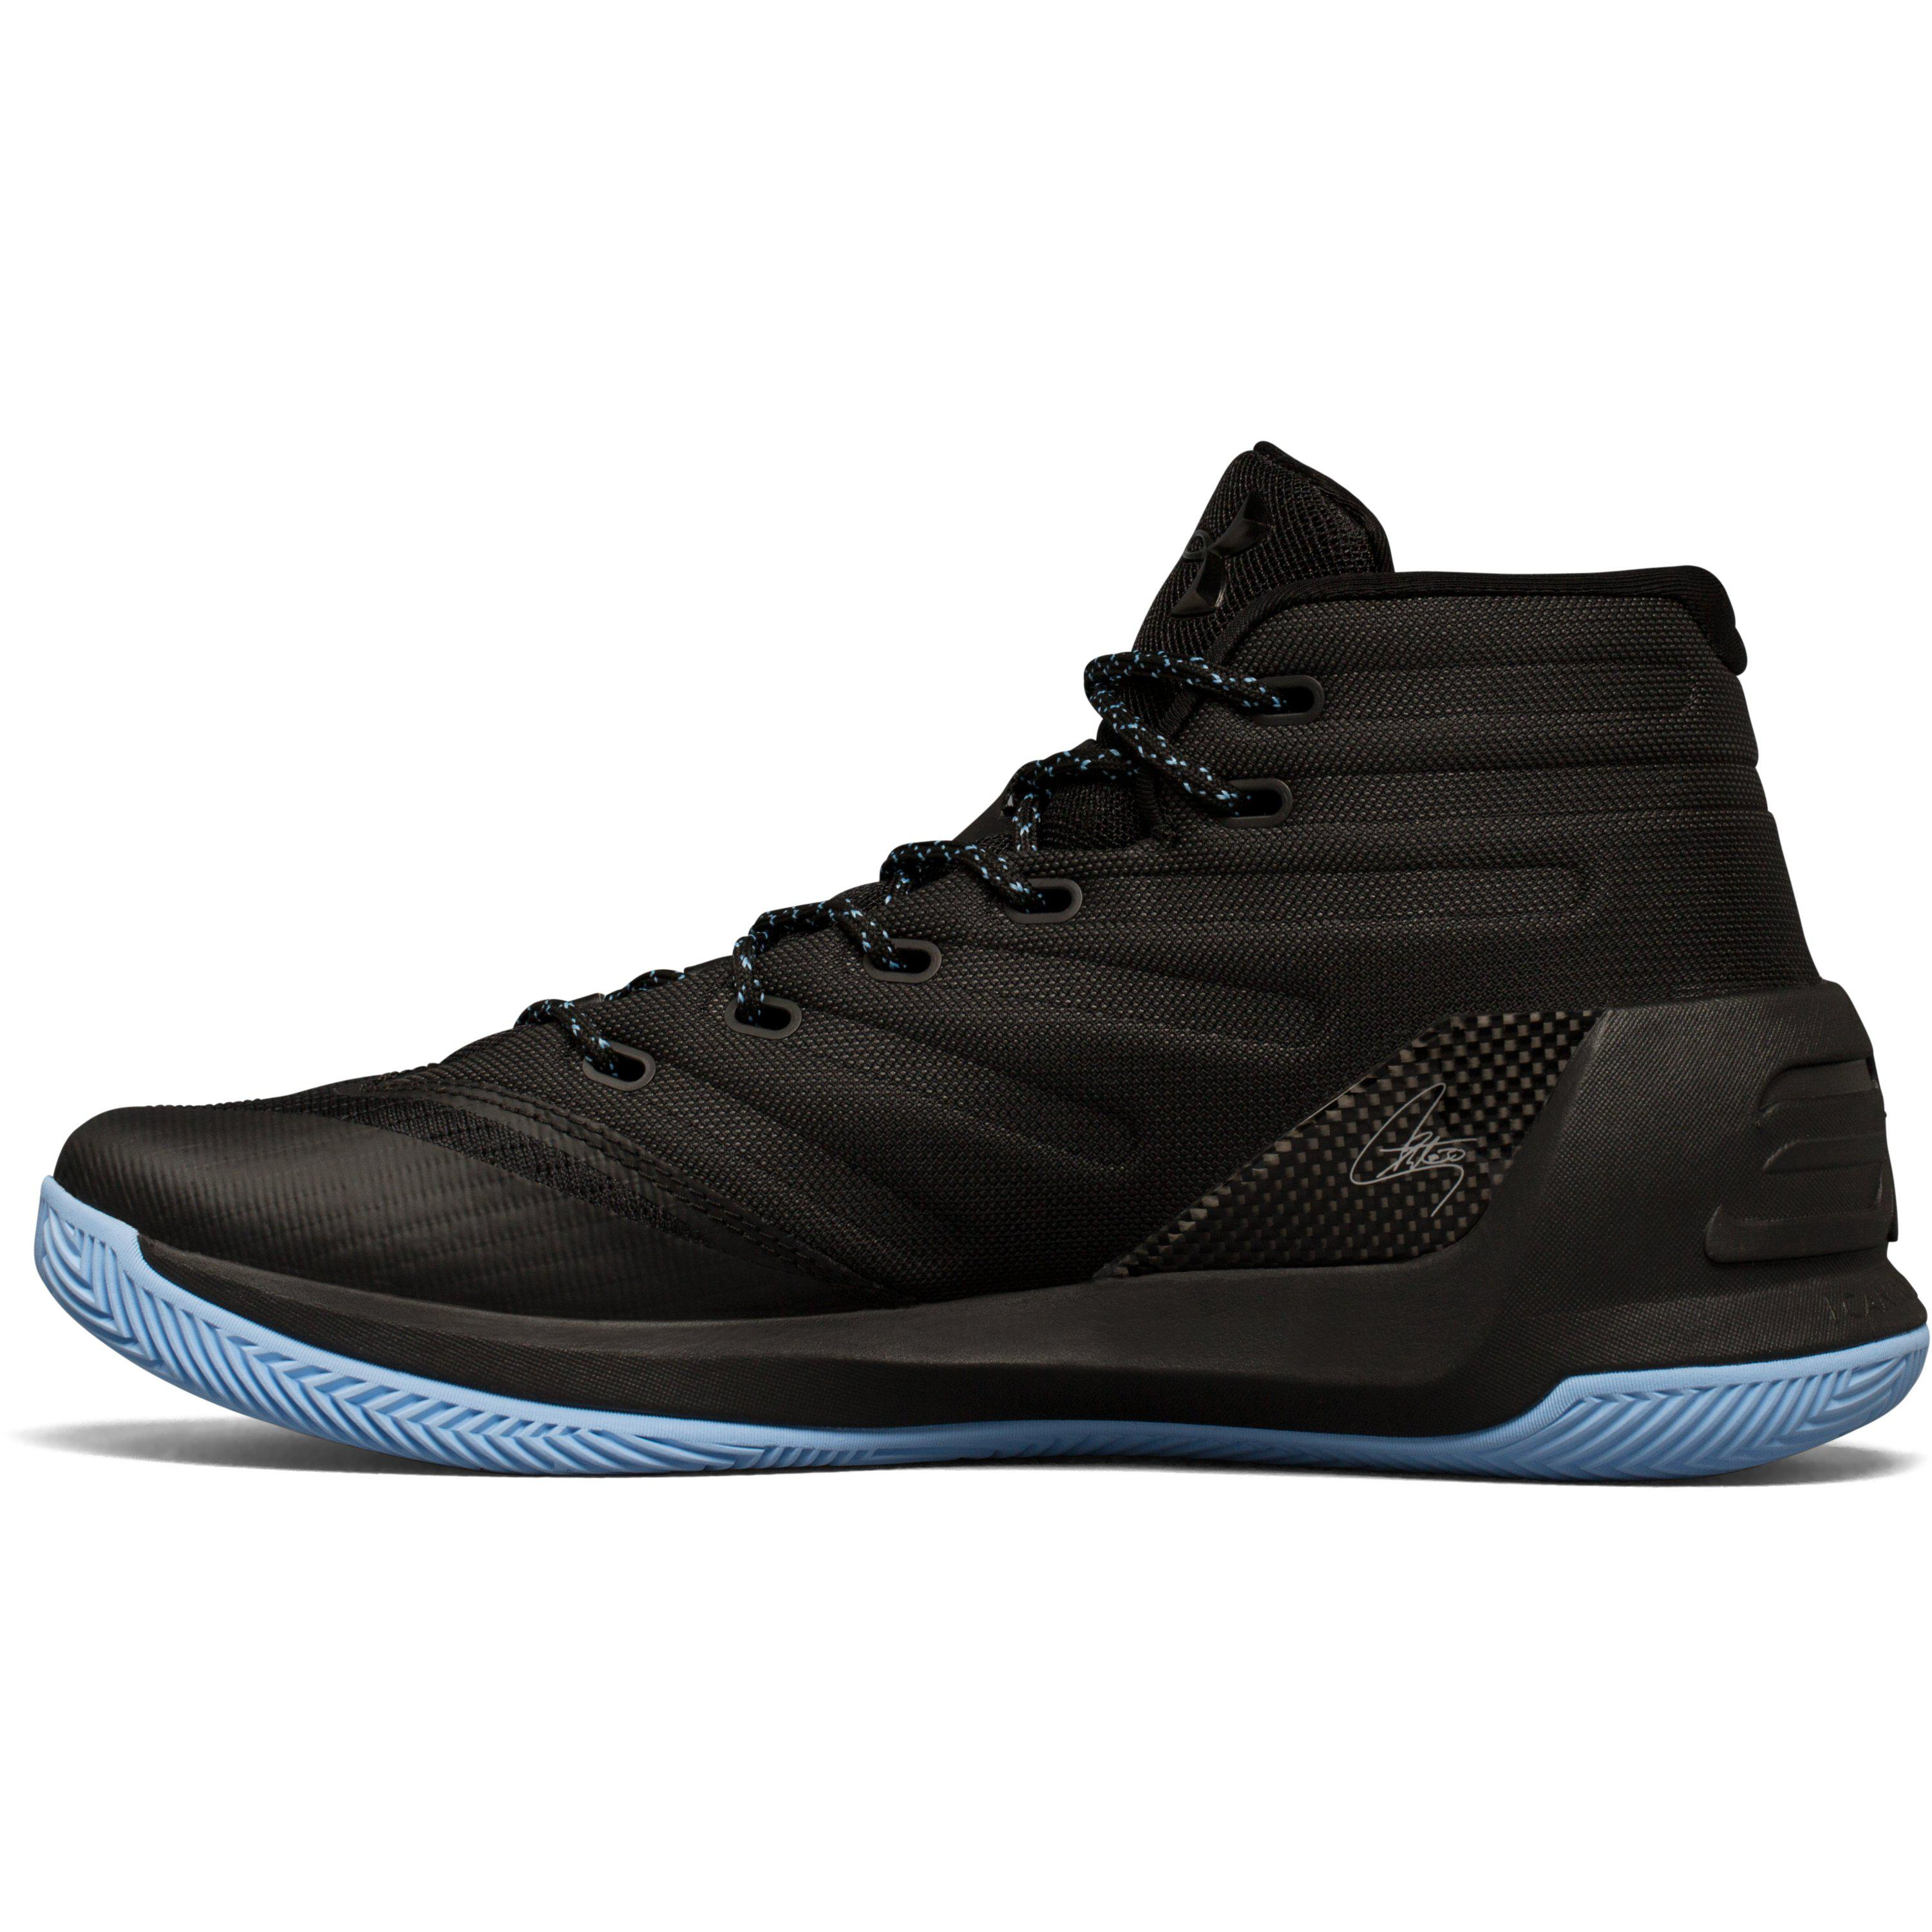 e24fb3d4b086 ... sneakers fbc2c 5de51  amazon under armour mens ua curry 3 basketball  shoes in black for men lyst 89acd 5bb90